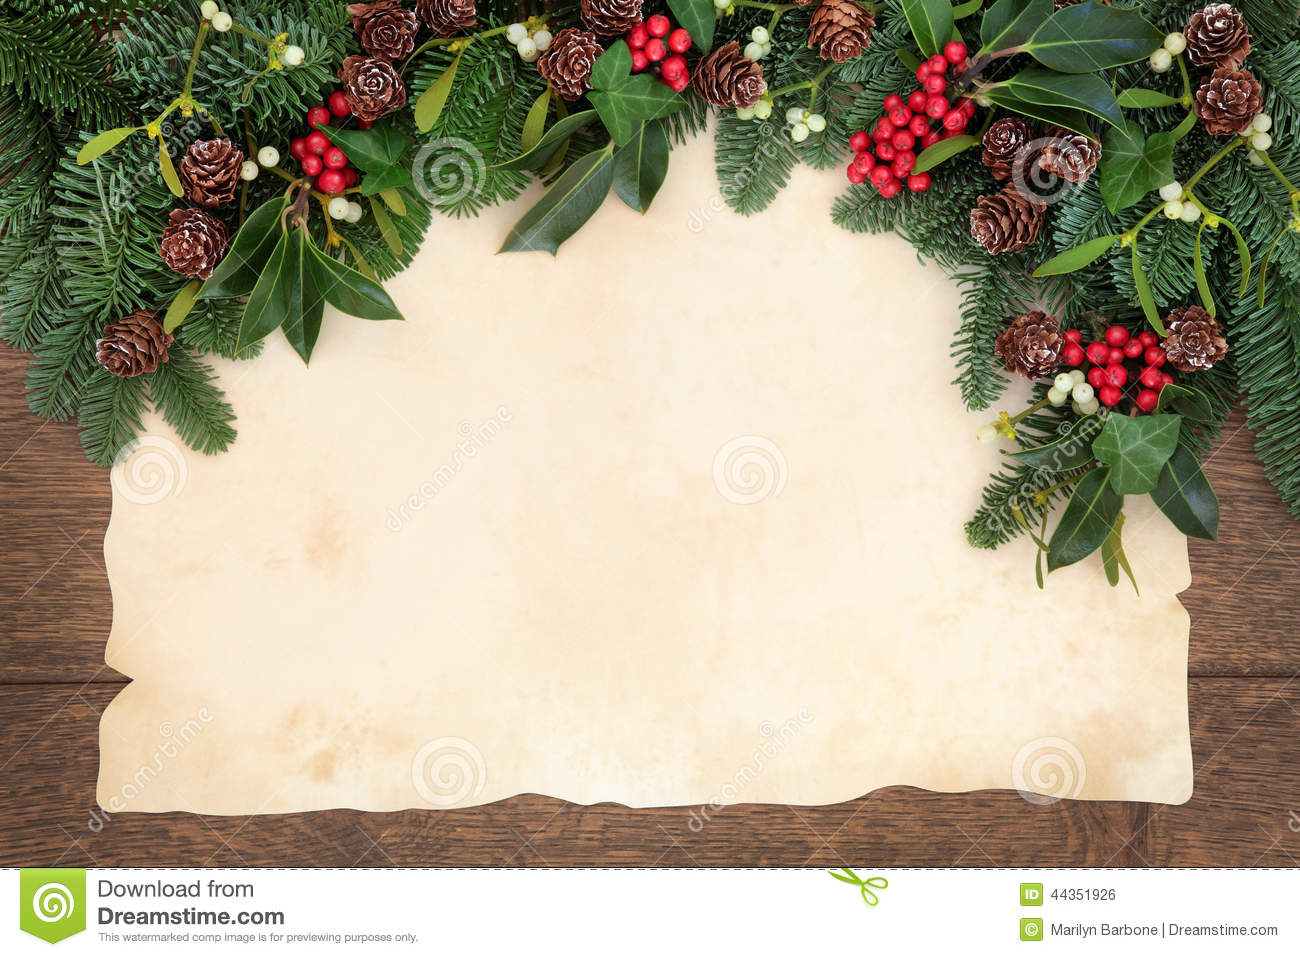 Why is holly a traditional christmas decoration - Royalty Free Stock Photo Download Traditional Christmas